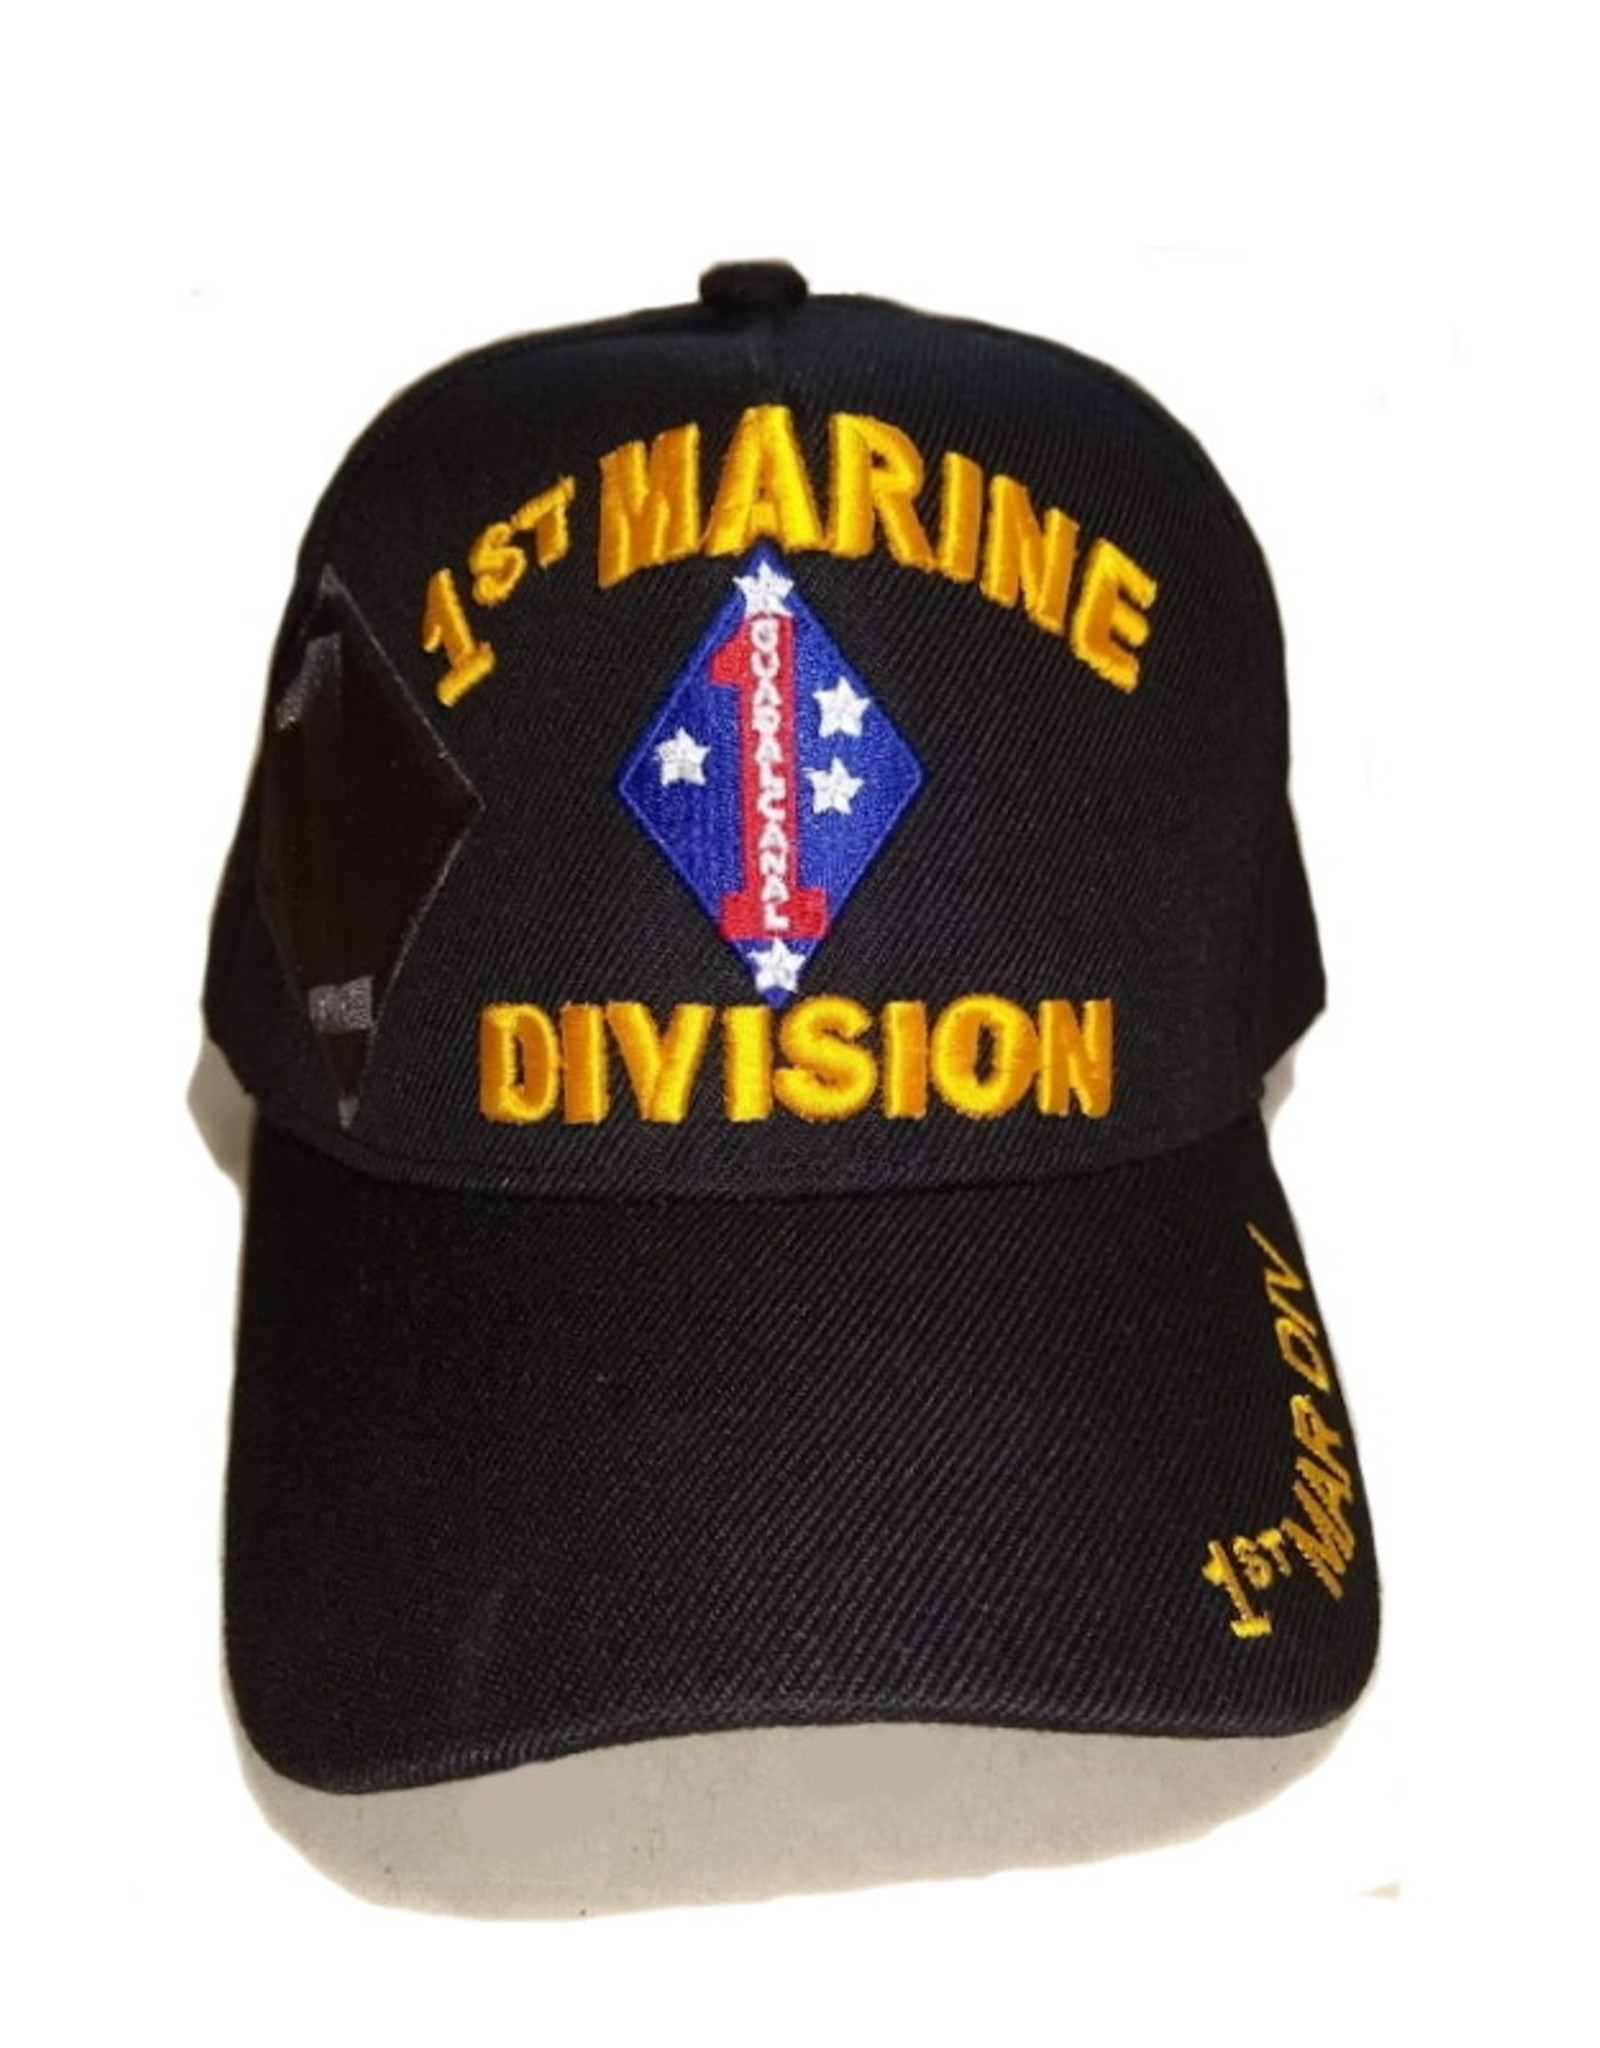 MidMil 1st Marine Division Hat with Emblem and Shadow Black